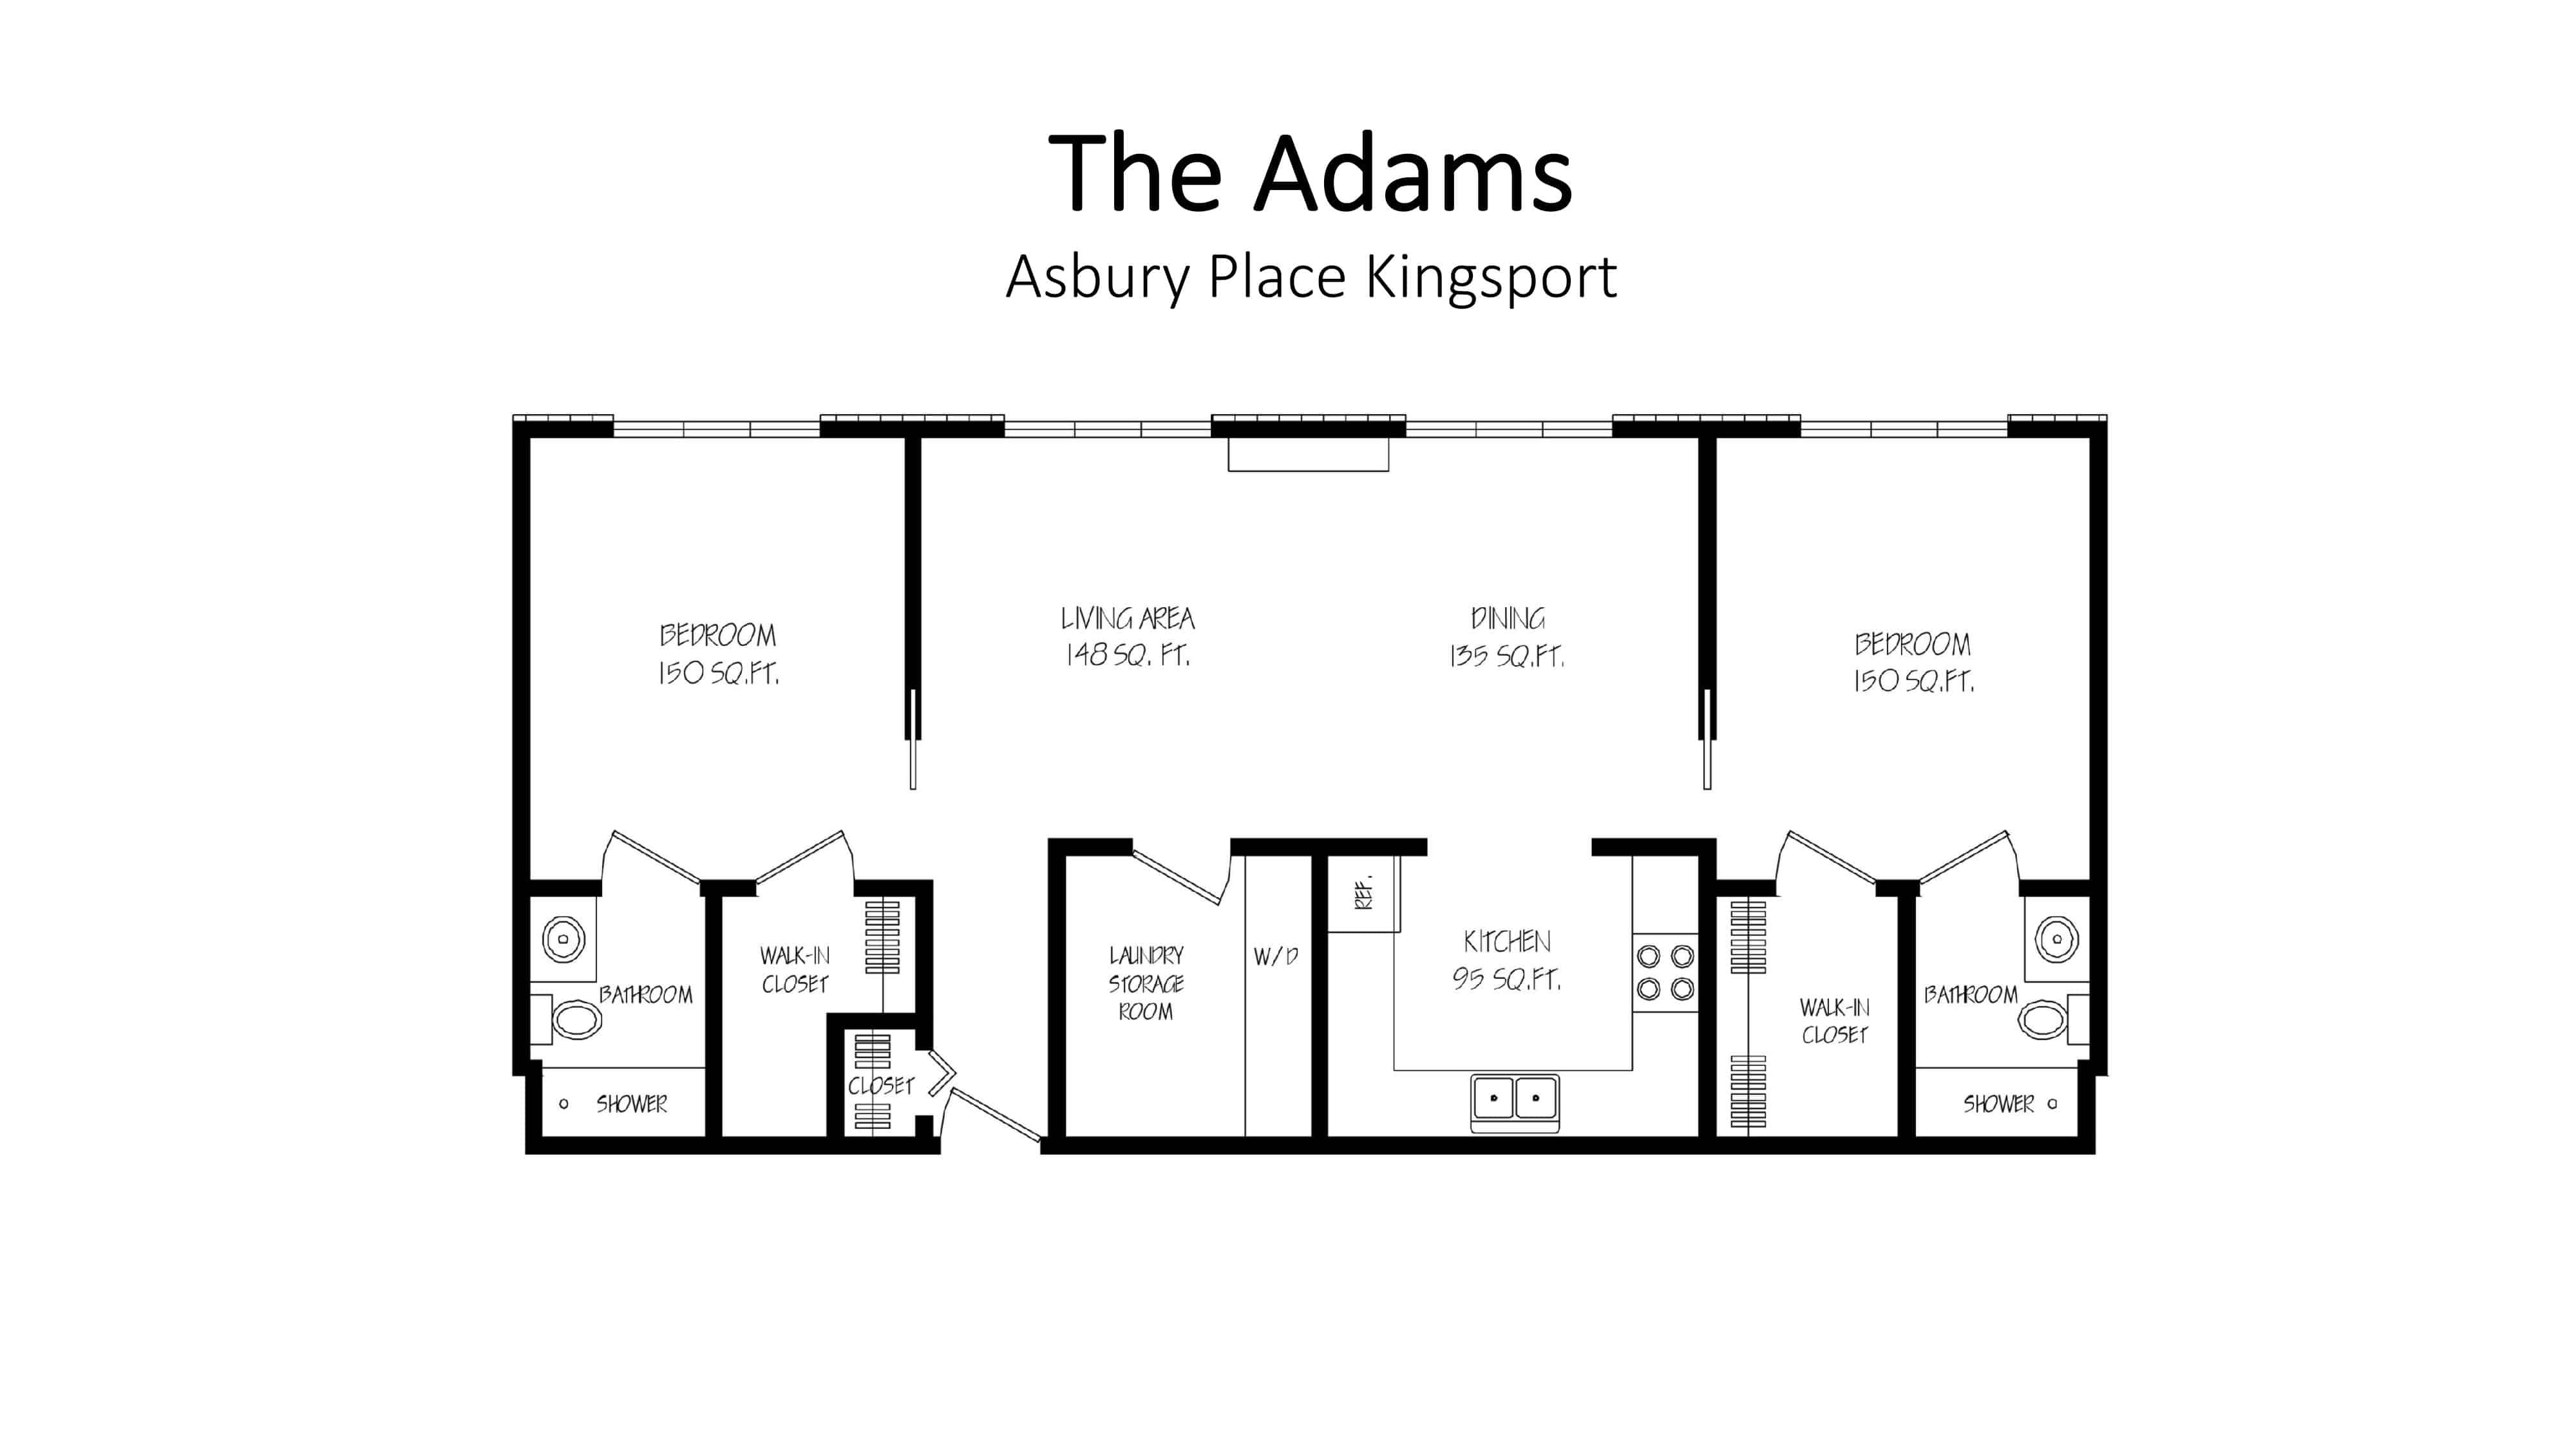 Asbury Place Kingsport The Adams Floorplan